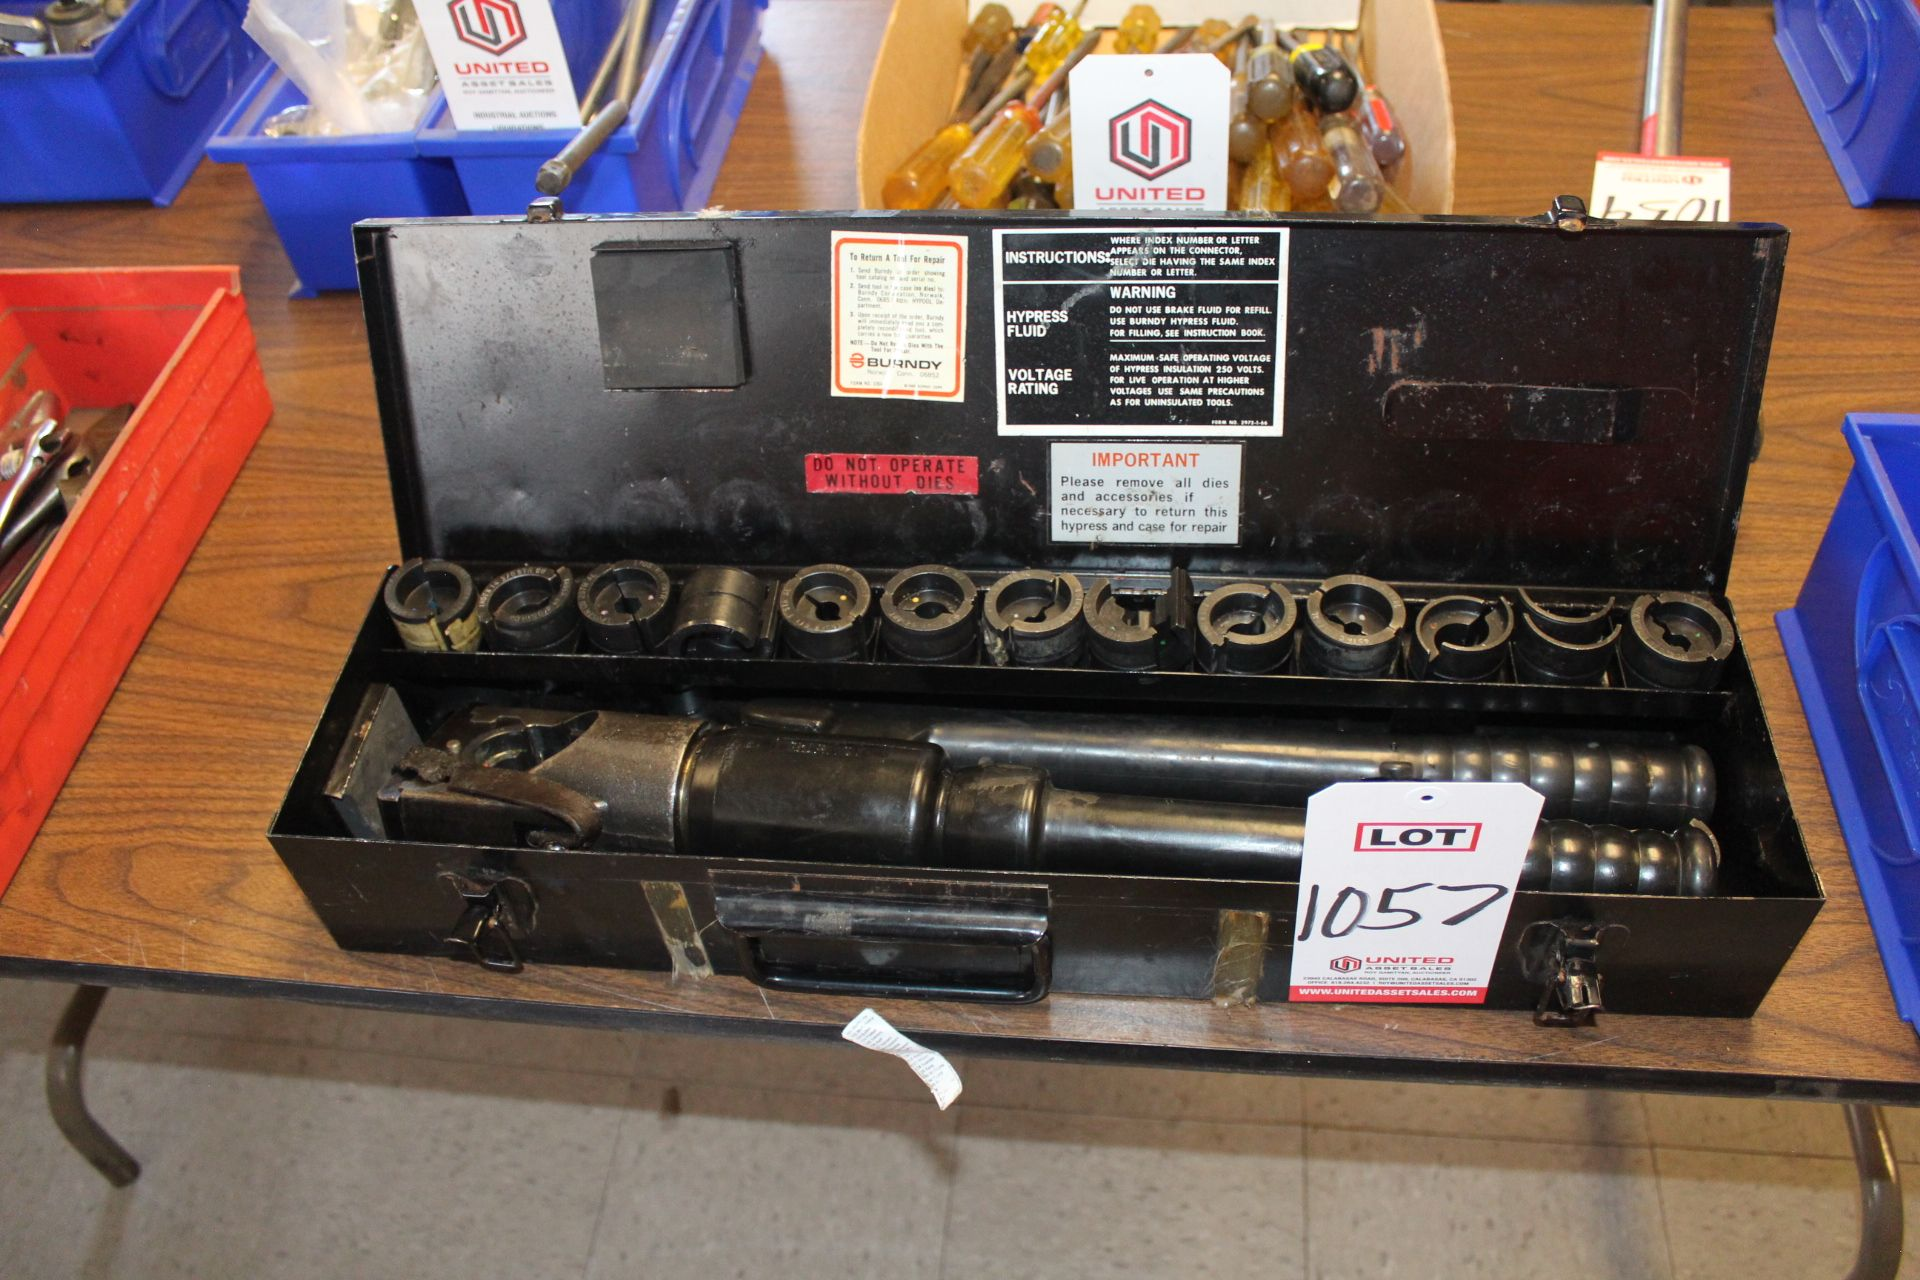 Lot 1057 - LOT - BURNDY Y93 HYPRESS CRIMPING TOOL SET, (LUNCHROOM)